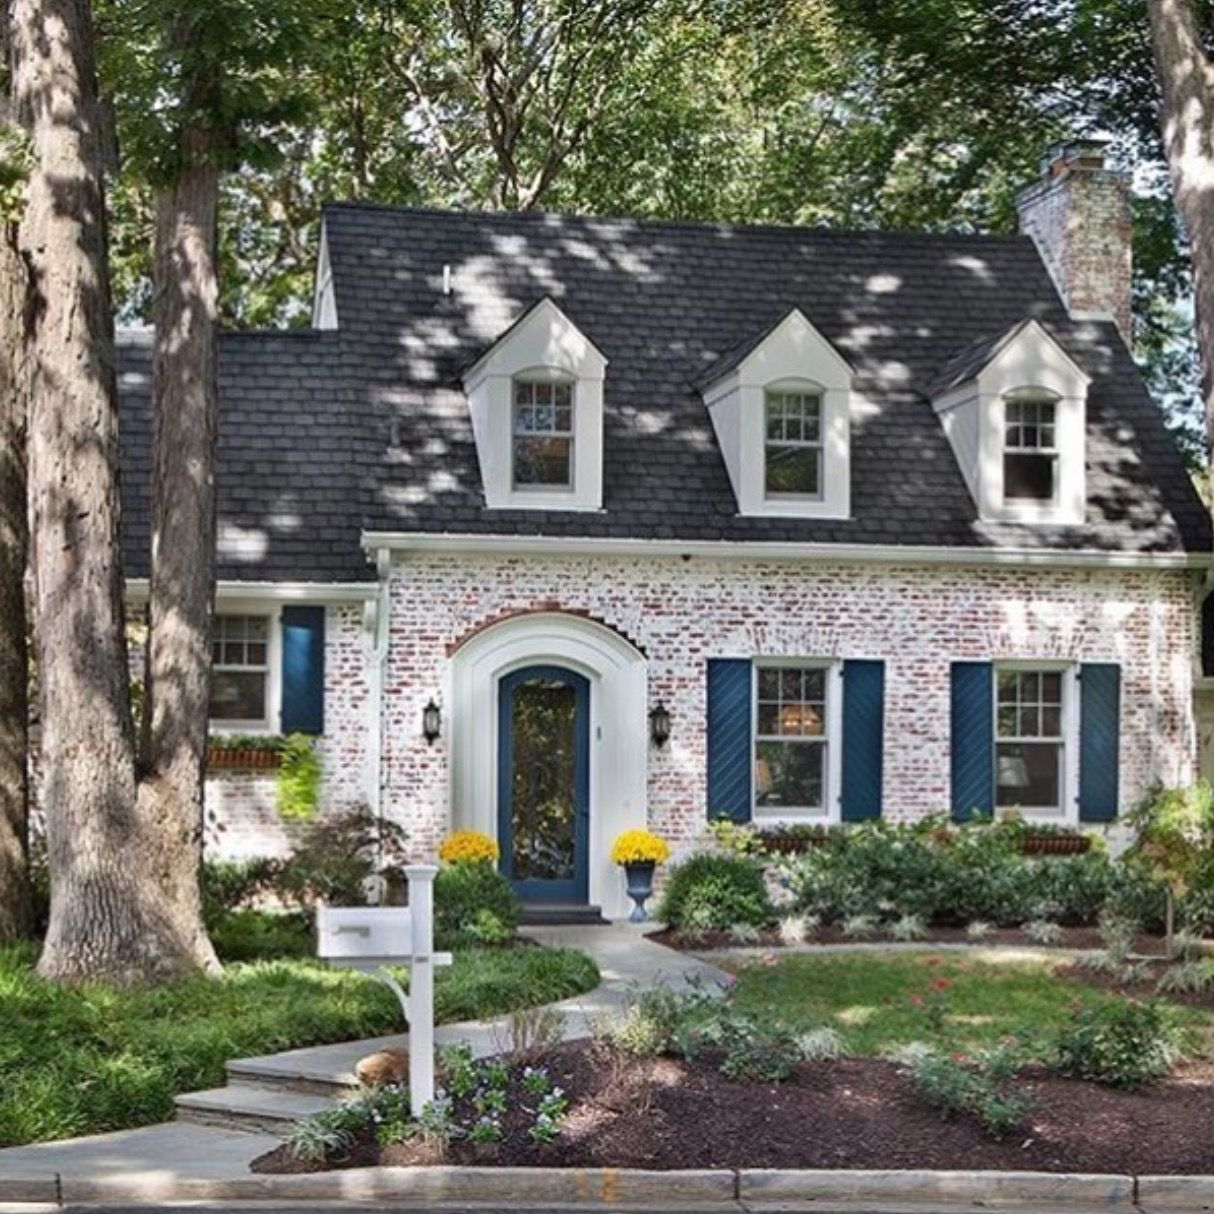 Love The White Washed Brick Dream Homes Pinterest Bricks House And Curb Appeal